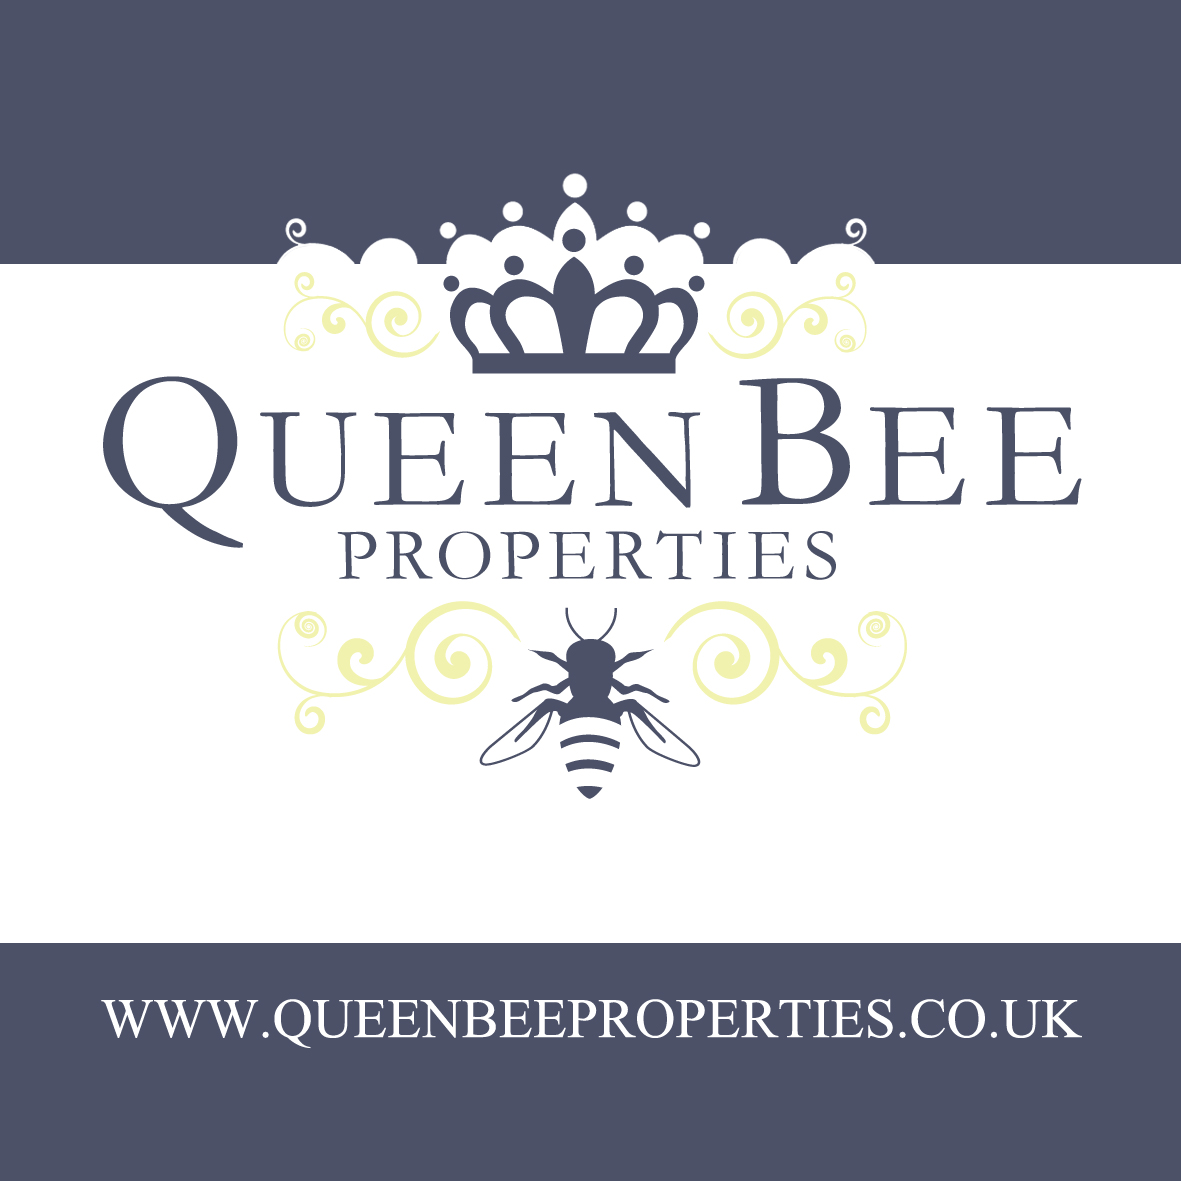 Queen Bee Properties Photo